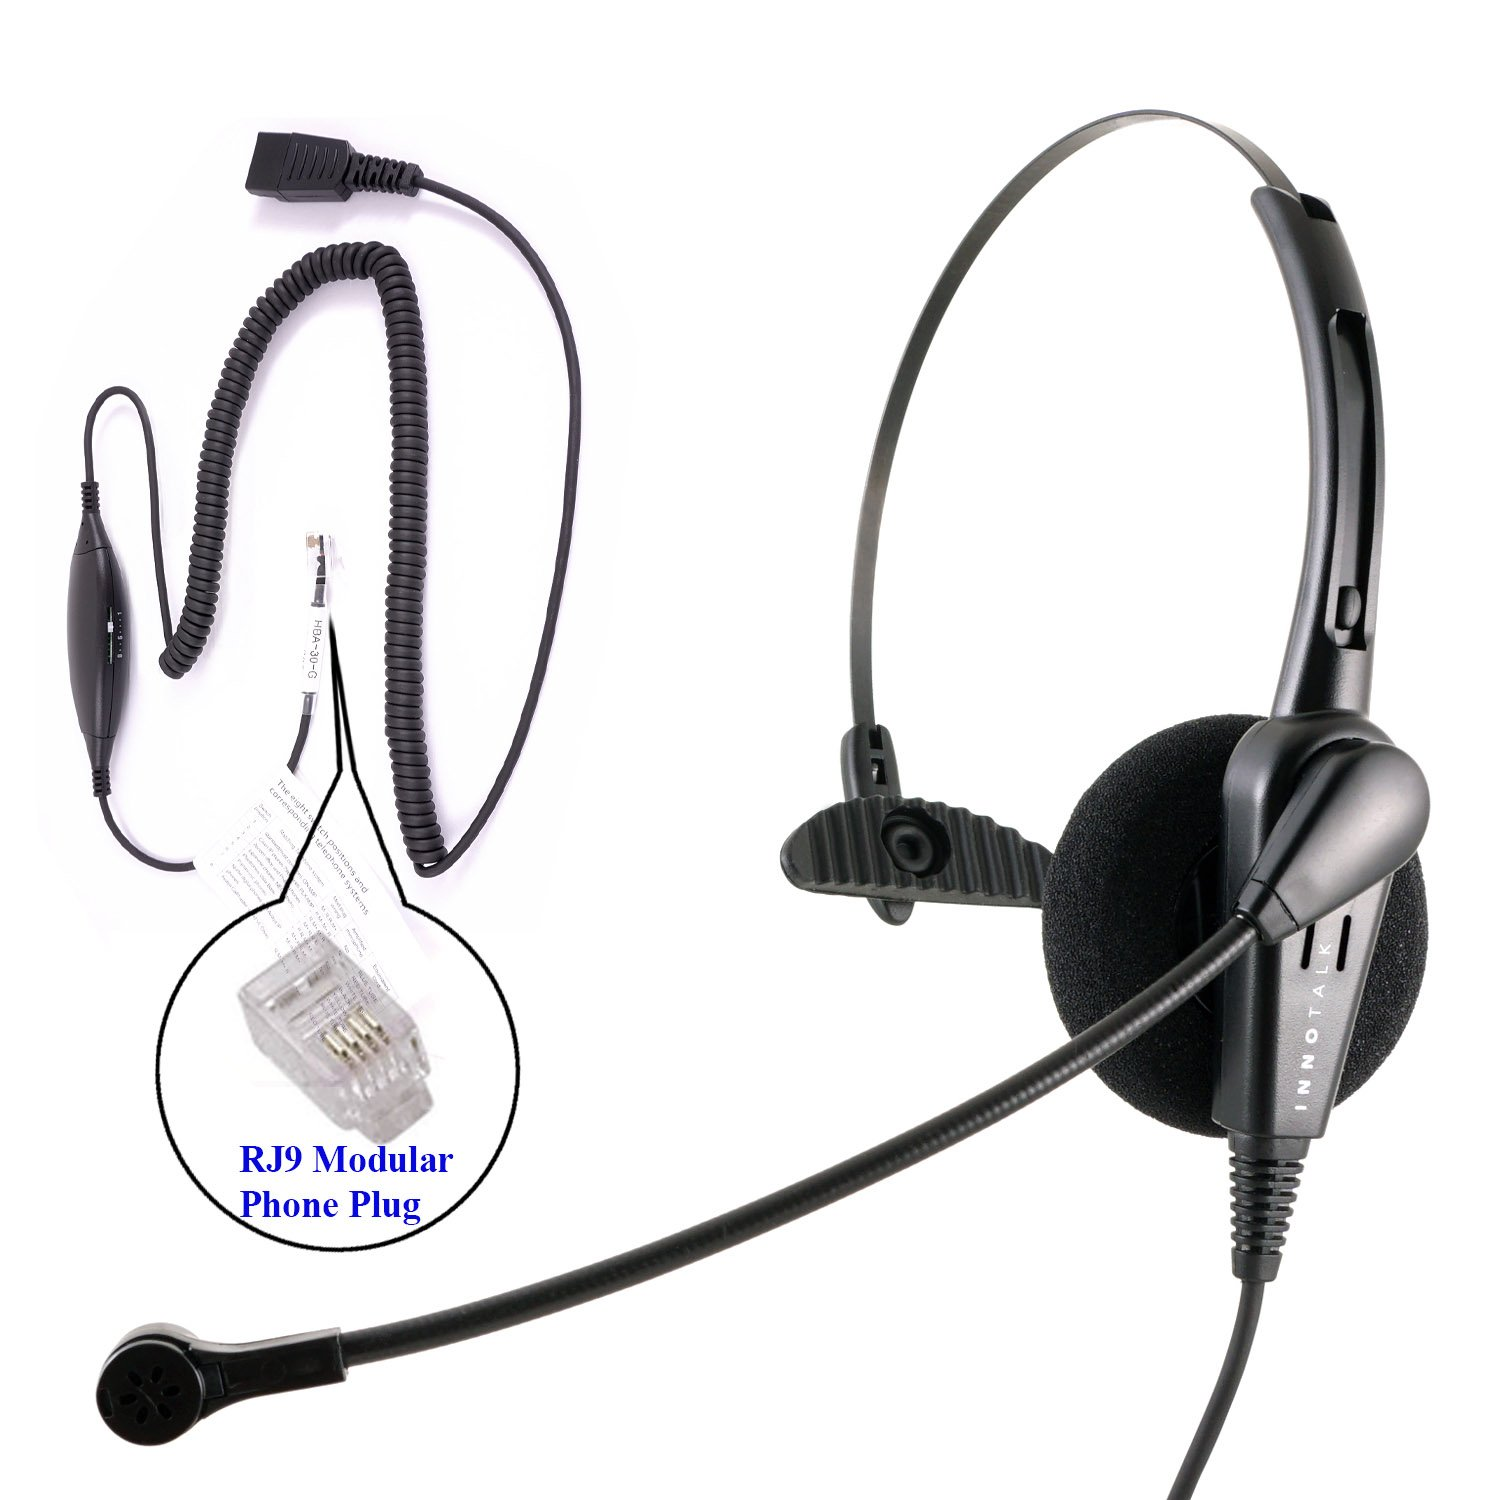 RJ9 Headset - Cost Effective Pro Monaural Headset + Virtual Compatibility RJ9 Cord applicable for Cisco Avaya Panasonic